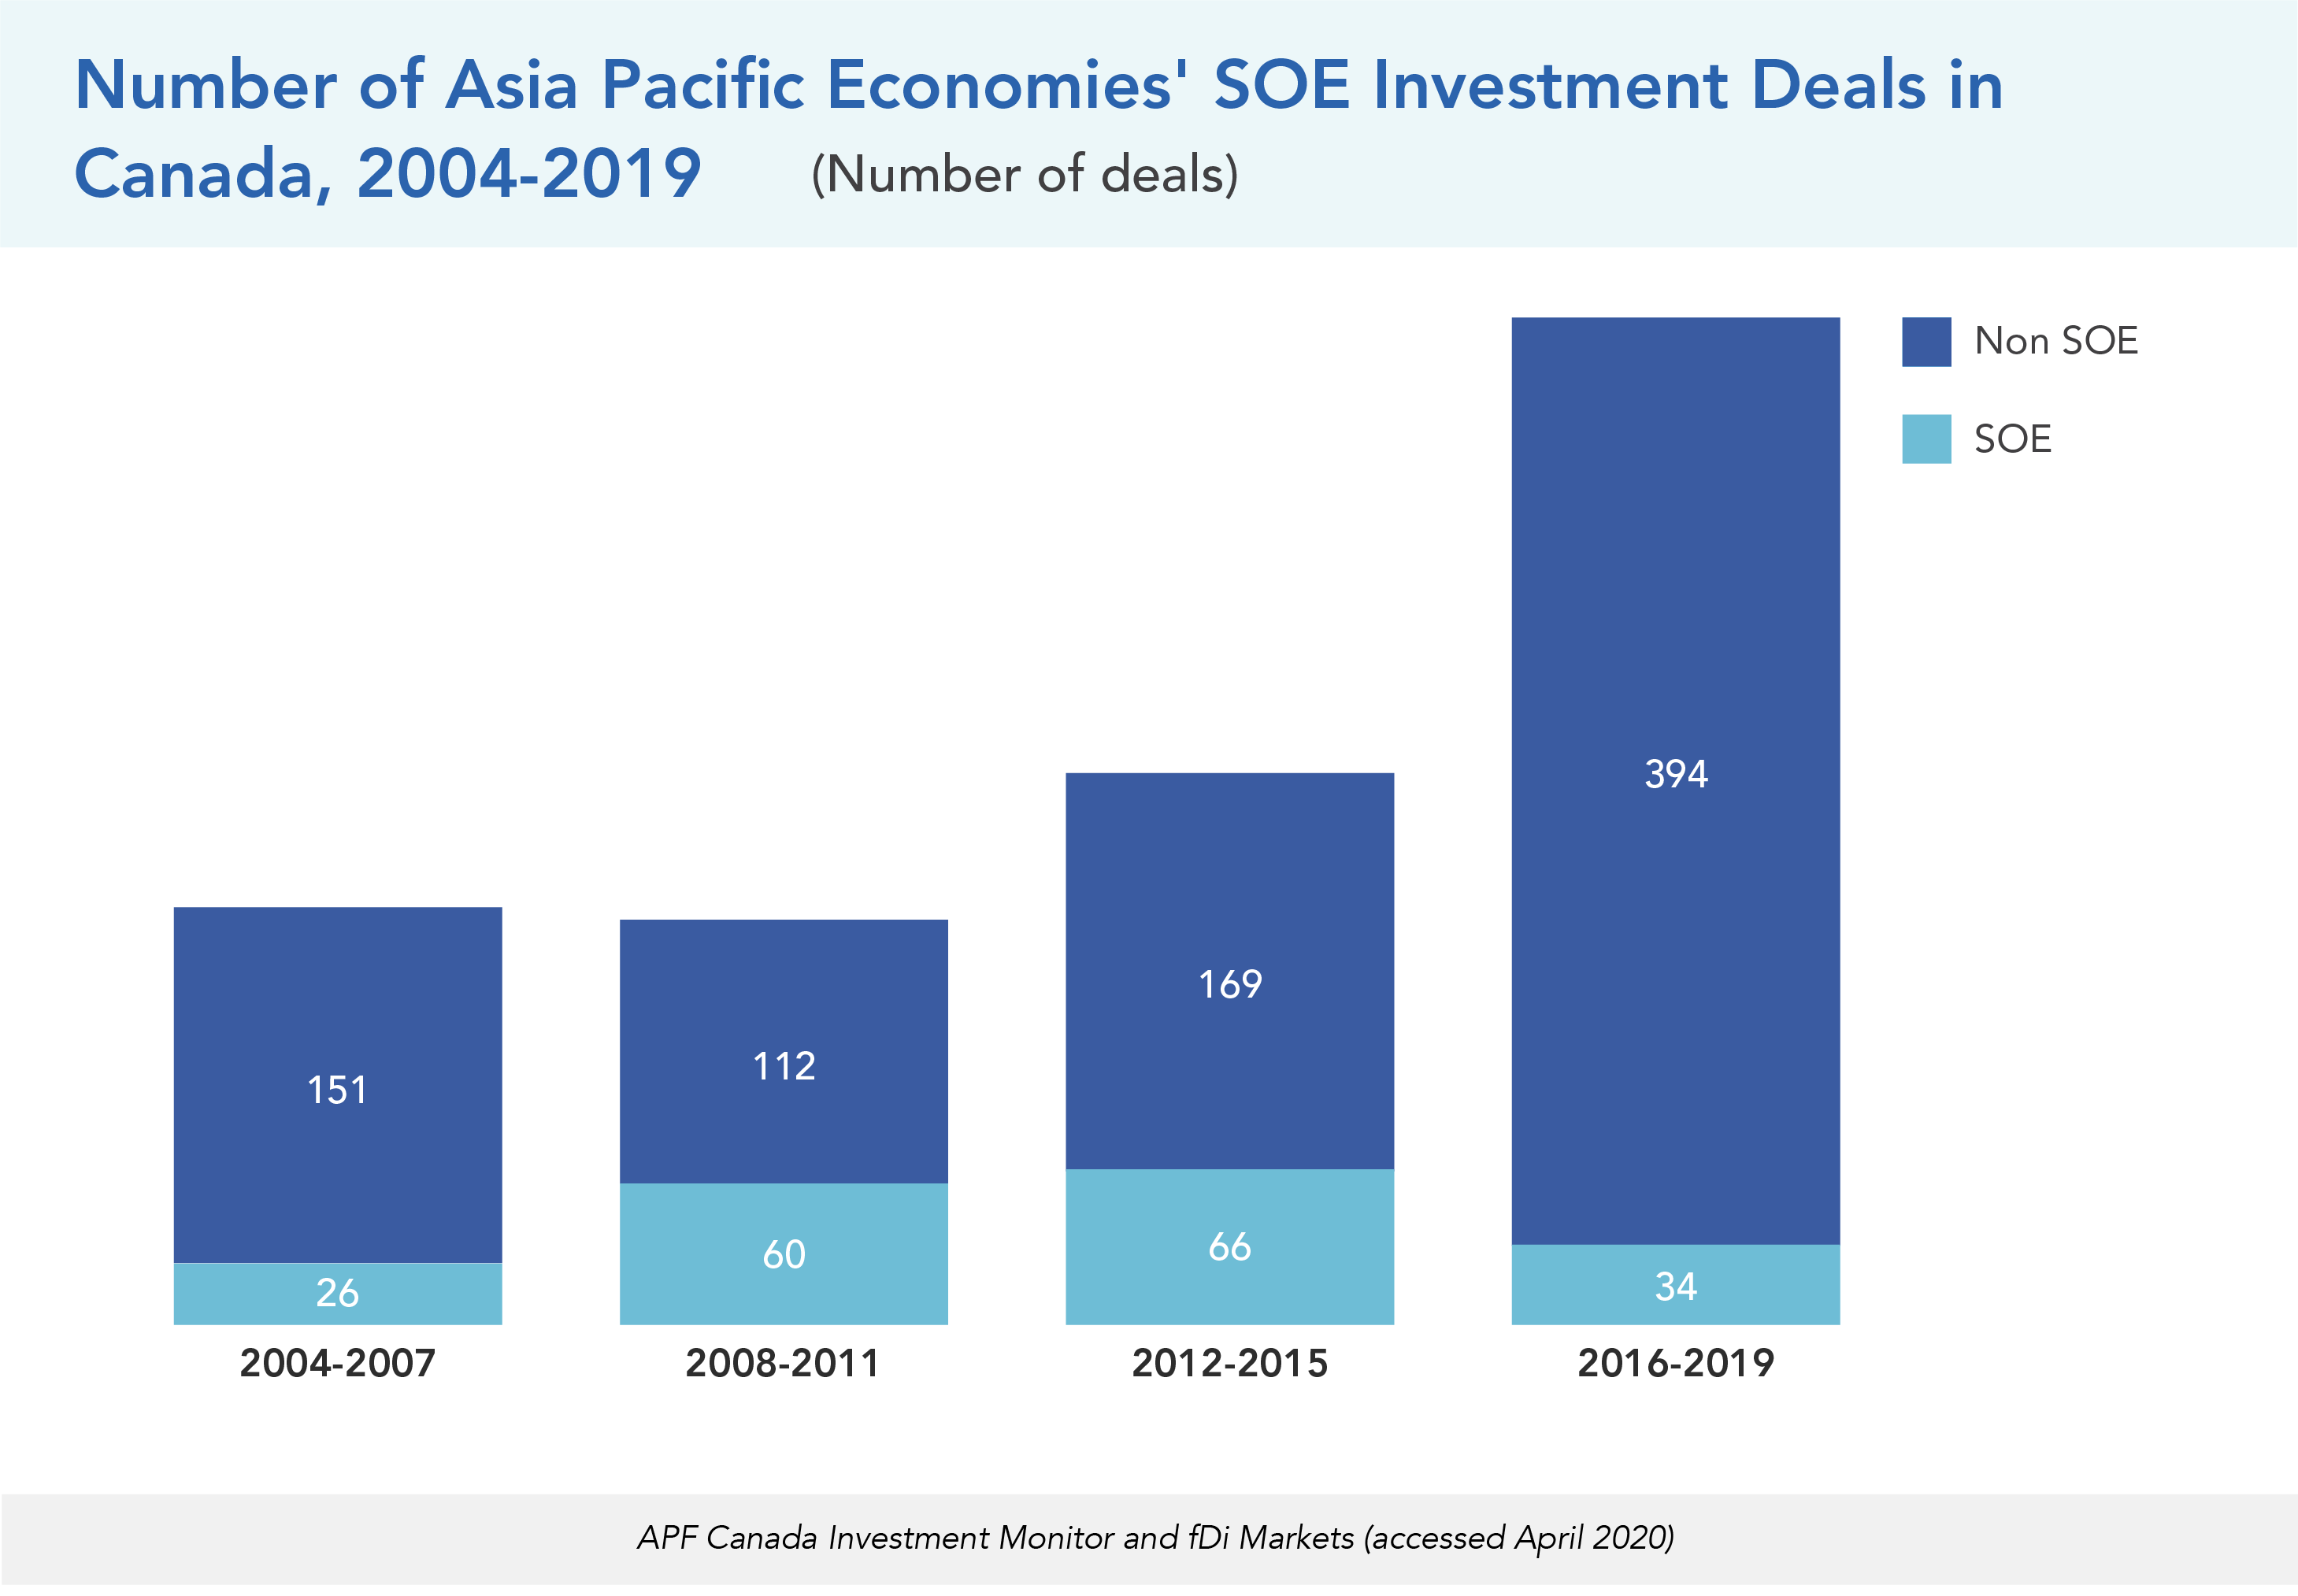 Number of Asia Pacific Economies' SOE Investment Deals in Canada, 2004-2019